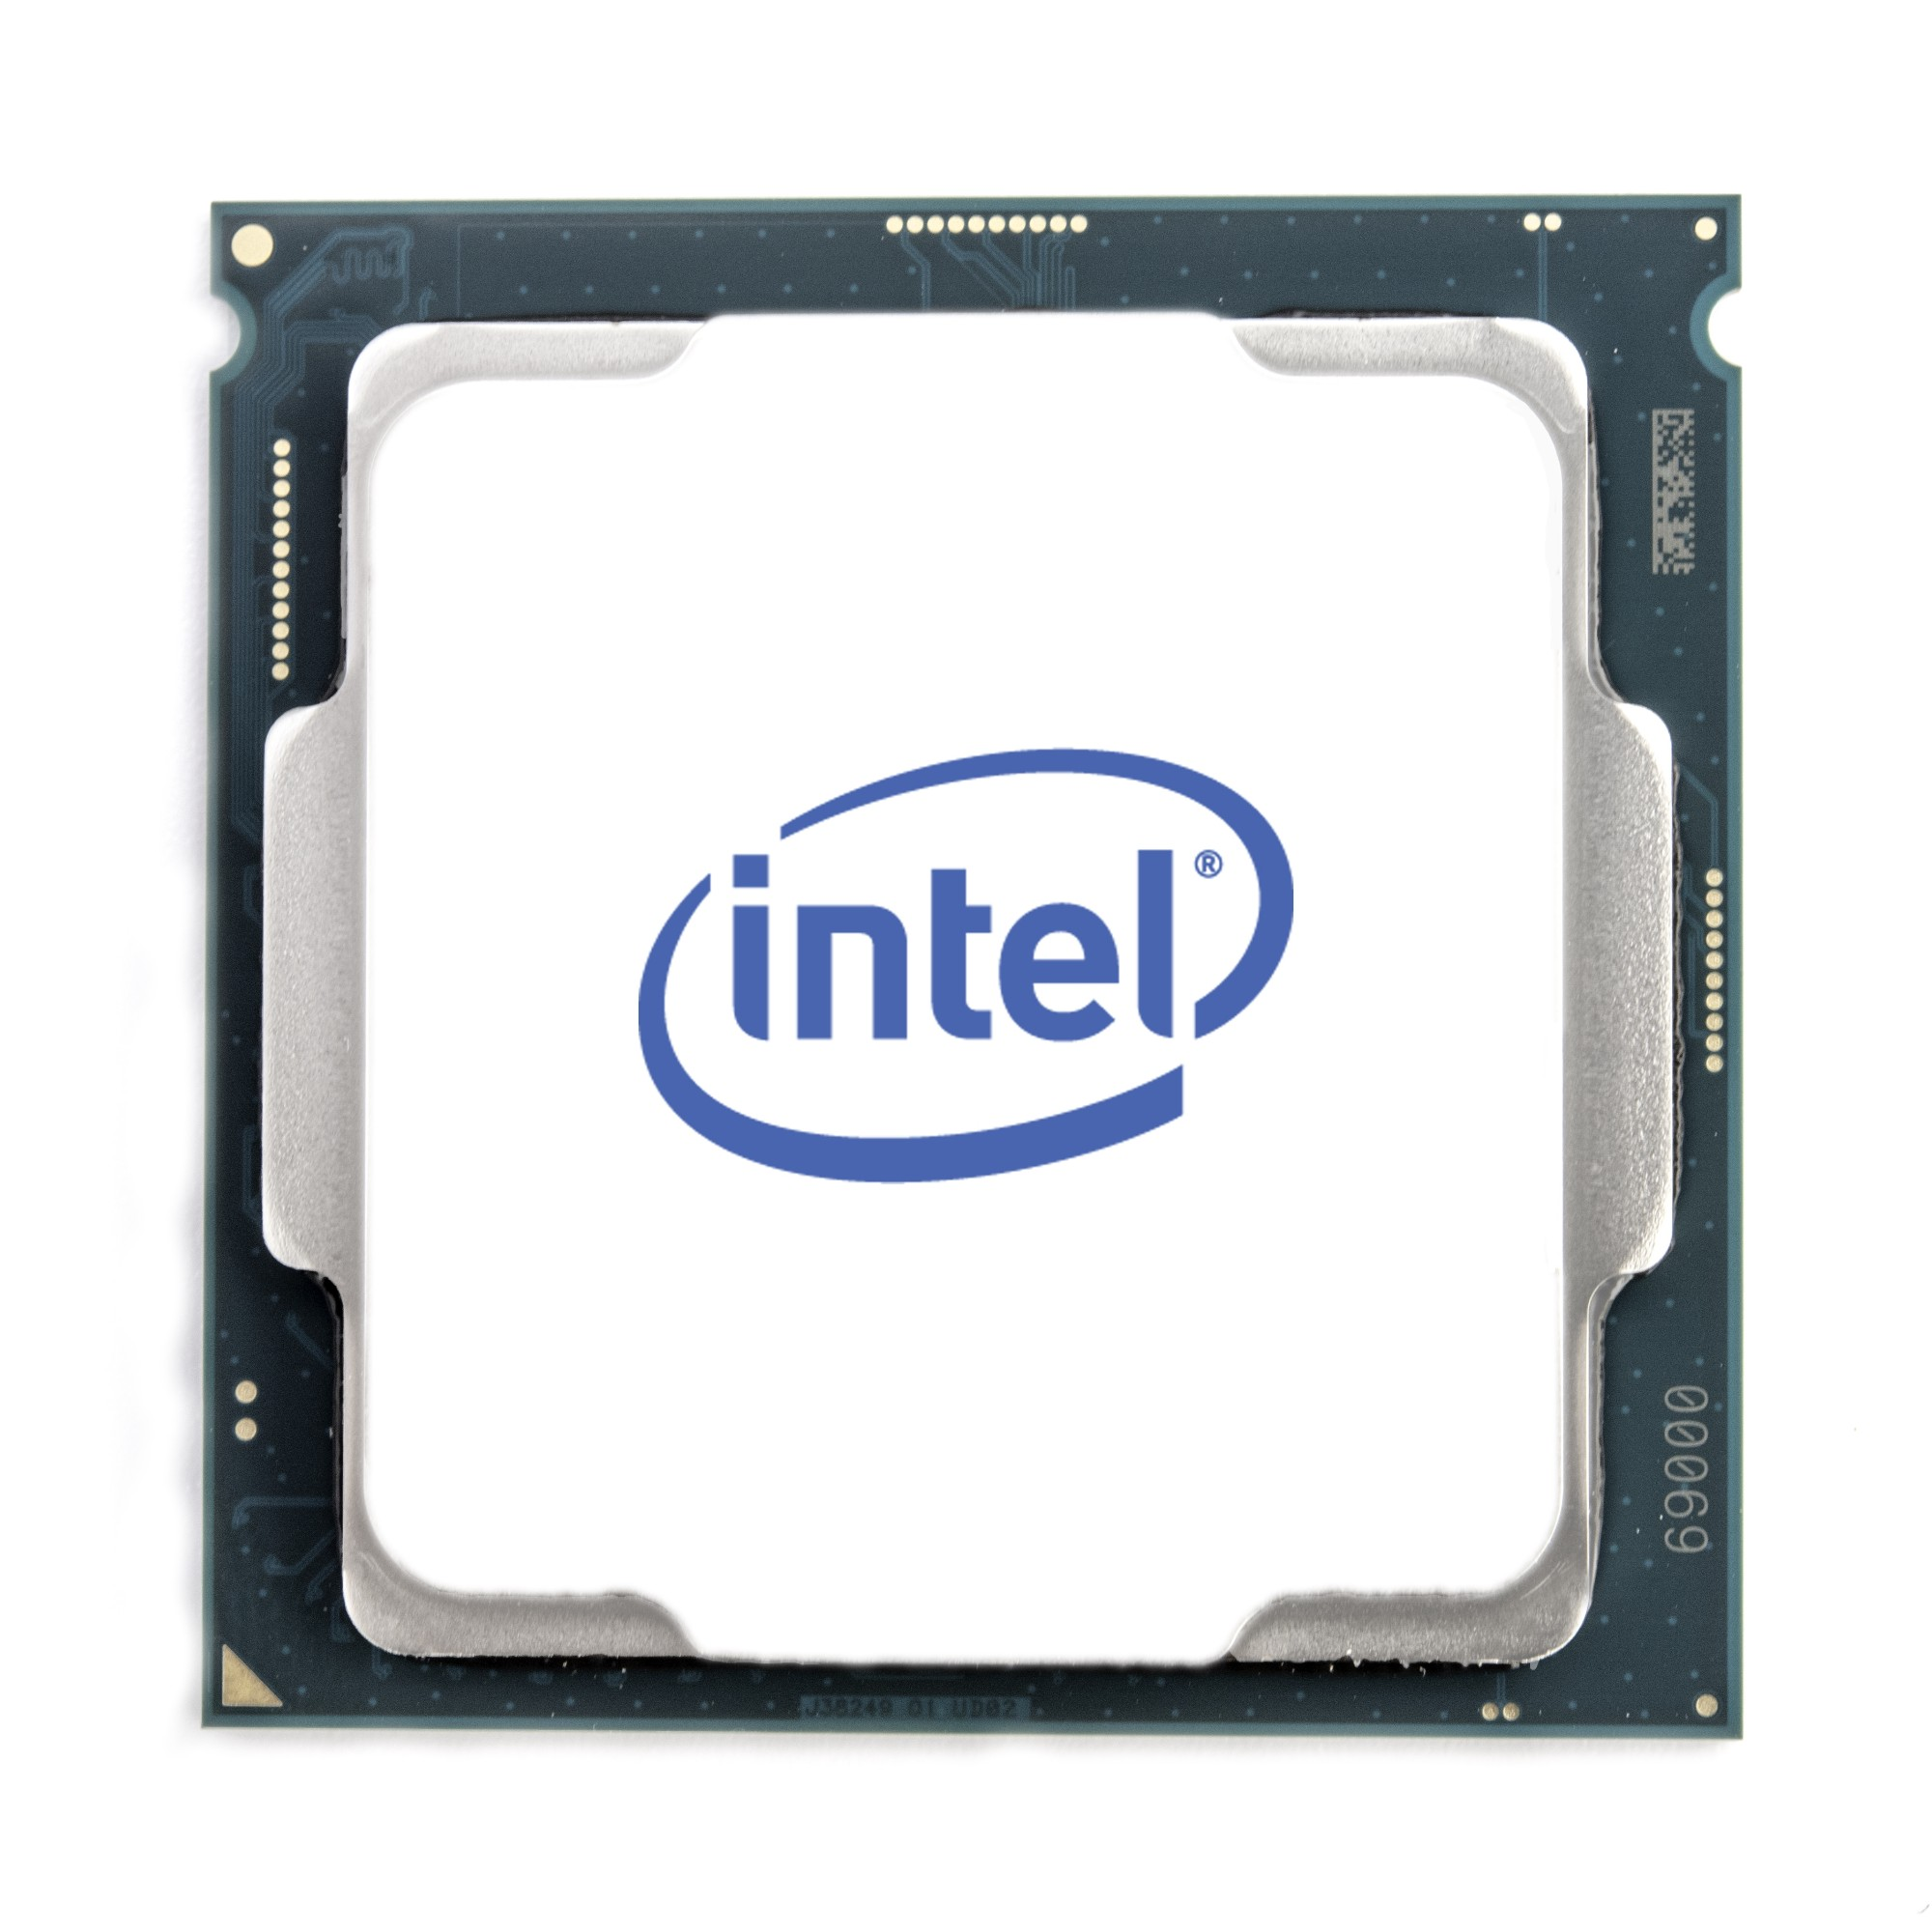 Intel Xeon E-2244G processor 3.8 GHz 8 MB